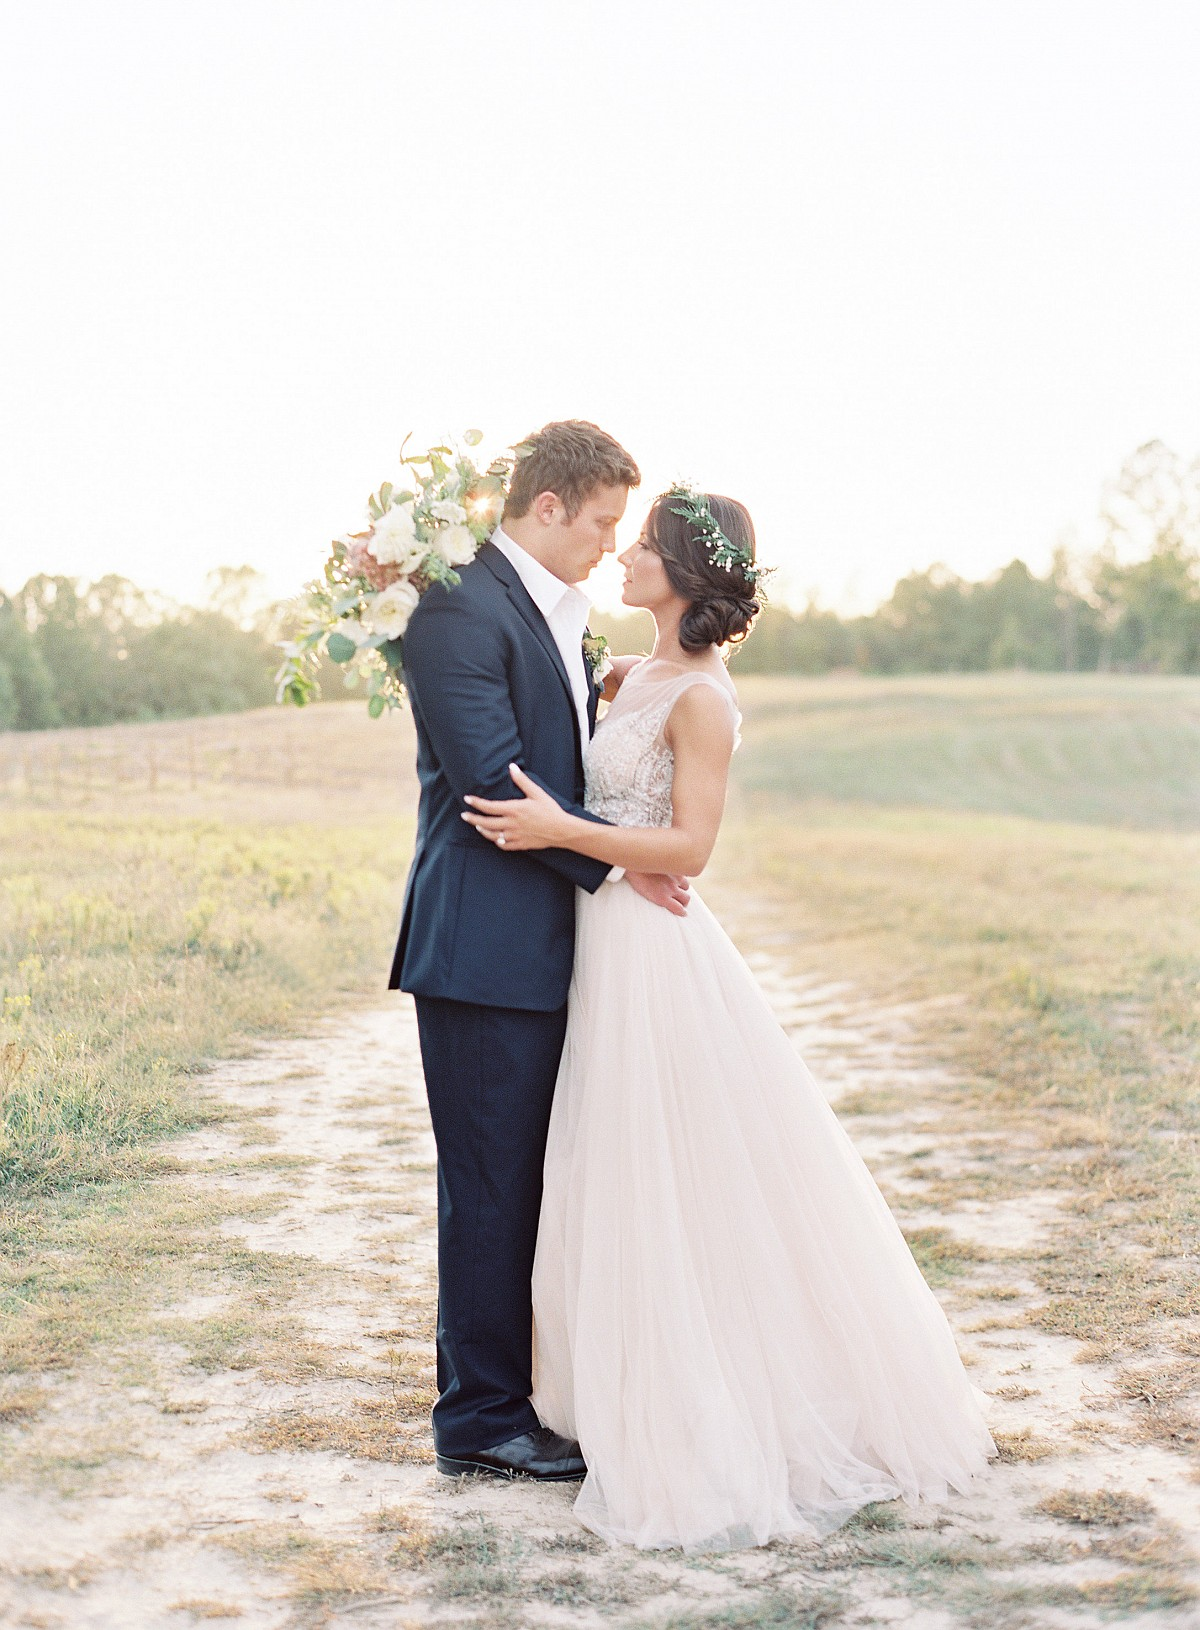 Light and Neutral Outdoor Wedding Ideas by Allison Kuhn | Wedding Sparrow | wedding blog